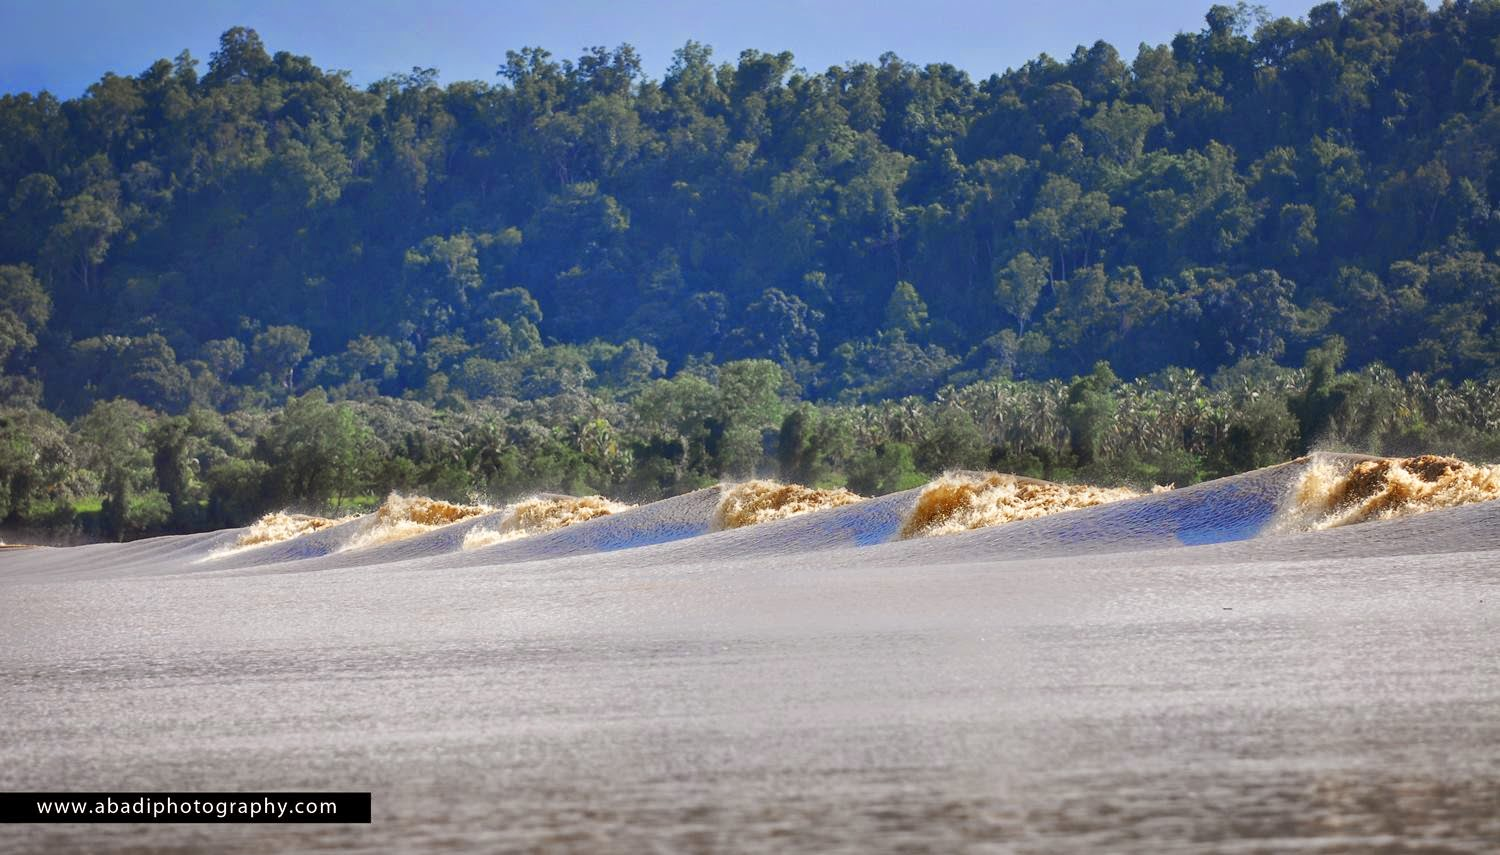 Big tidal bores cresting along the Batang Lupar Sri Aman | Abadi Photography